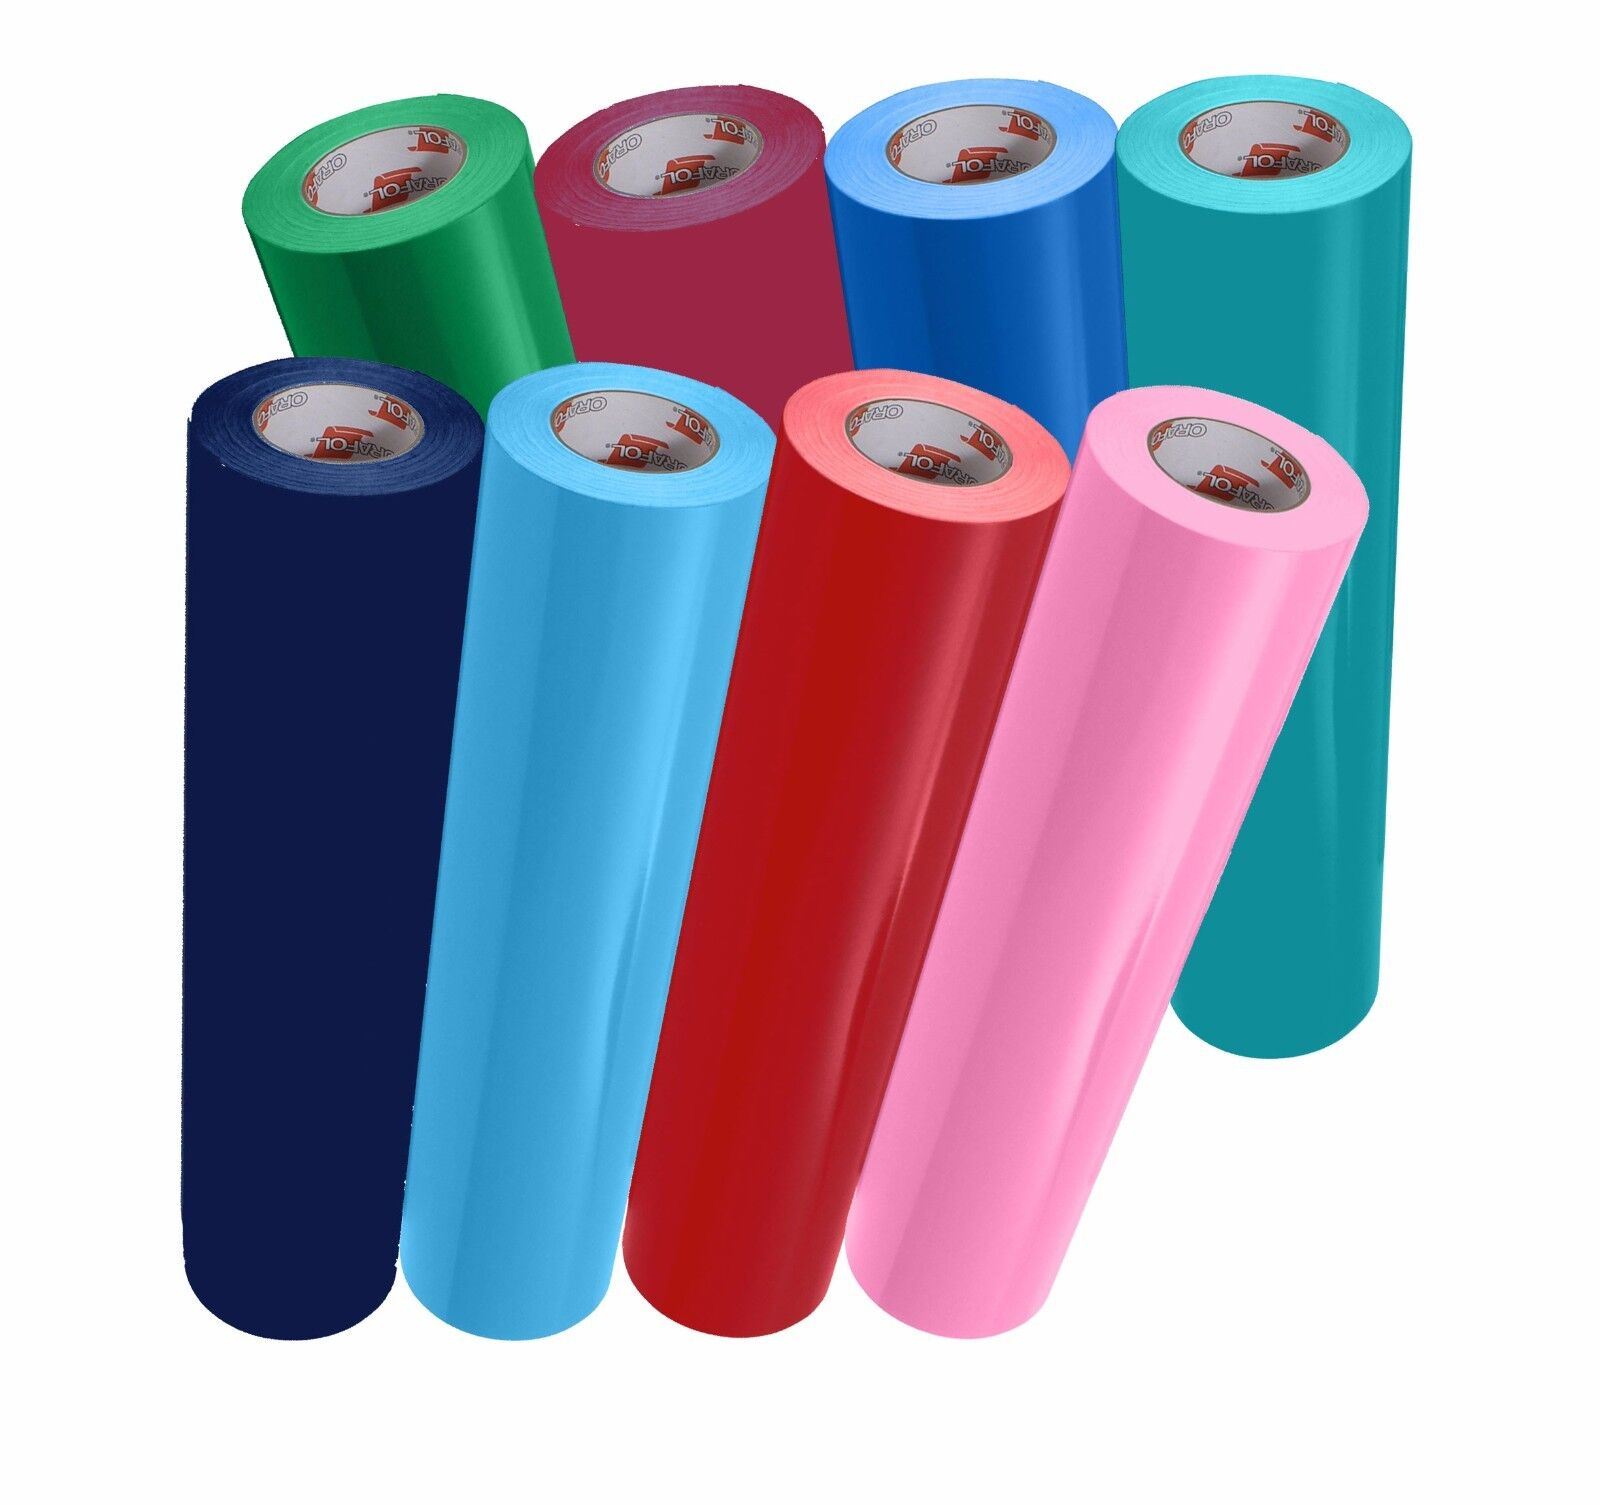 "Oracal 651 12"" x 5ft. Roll Glossy Vinyl - Different Colors"